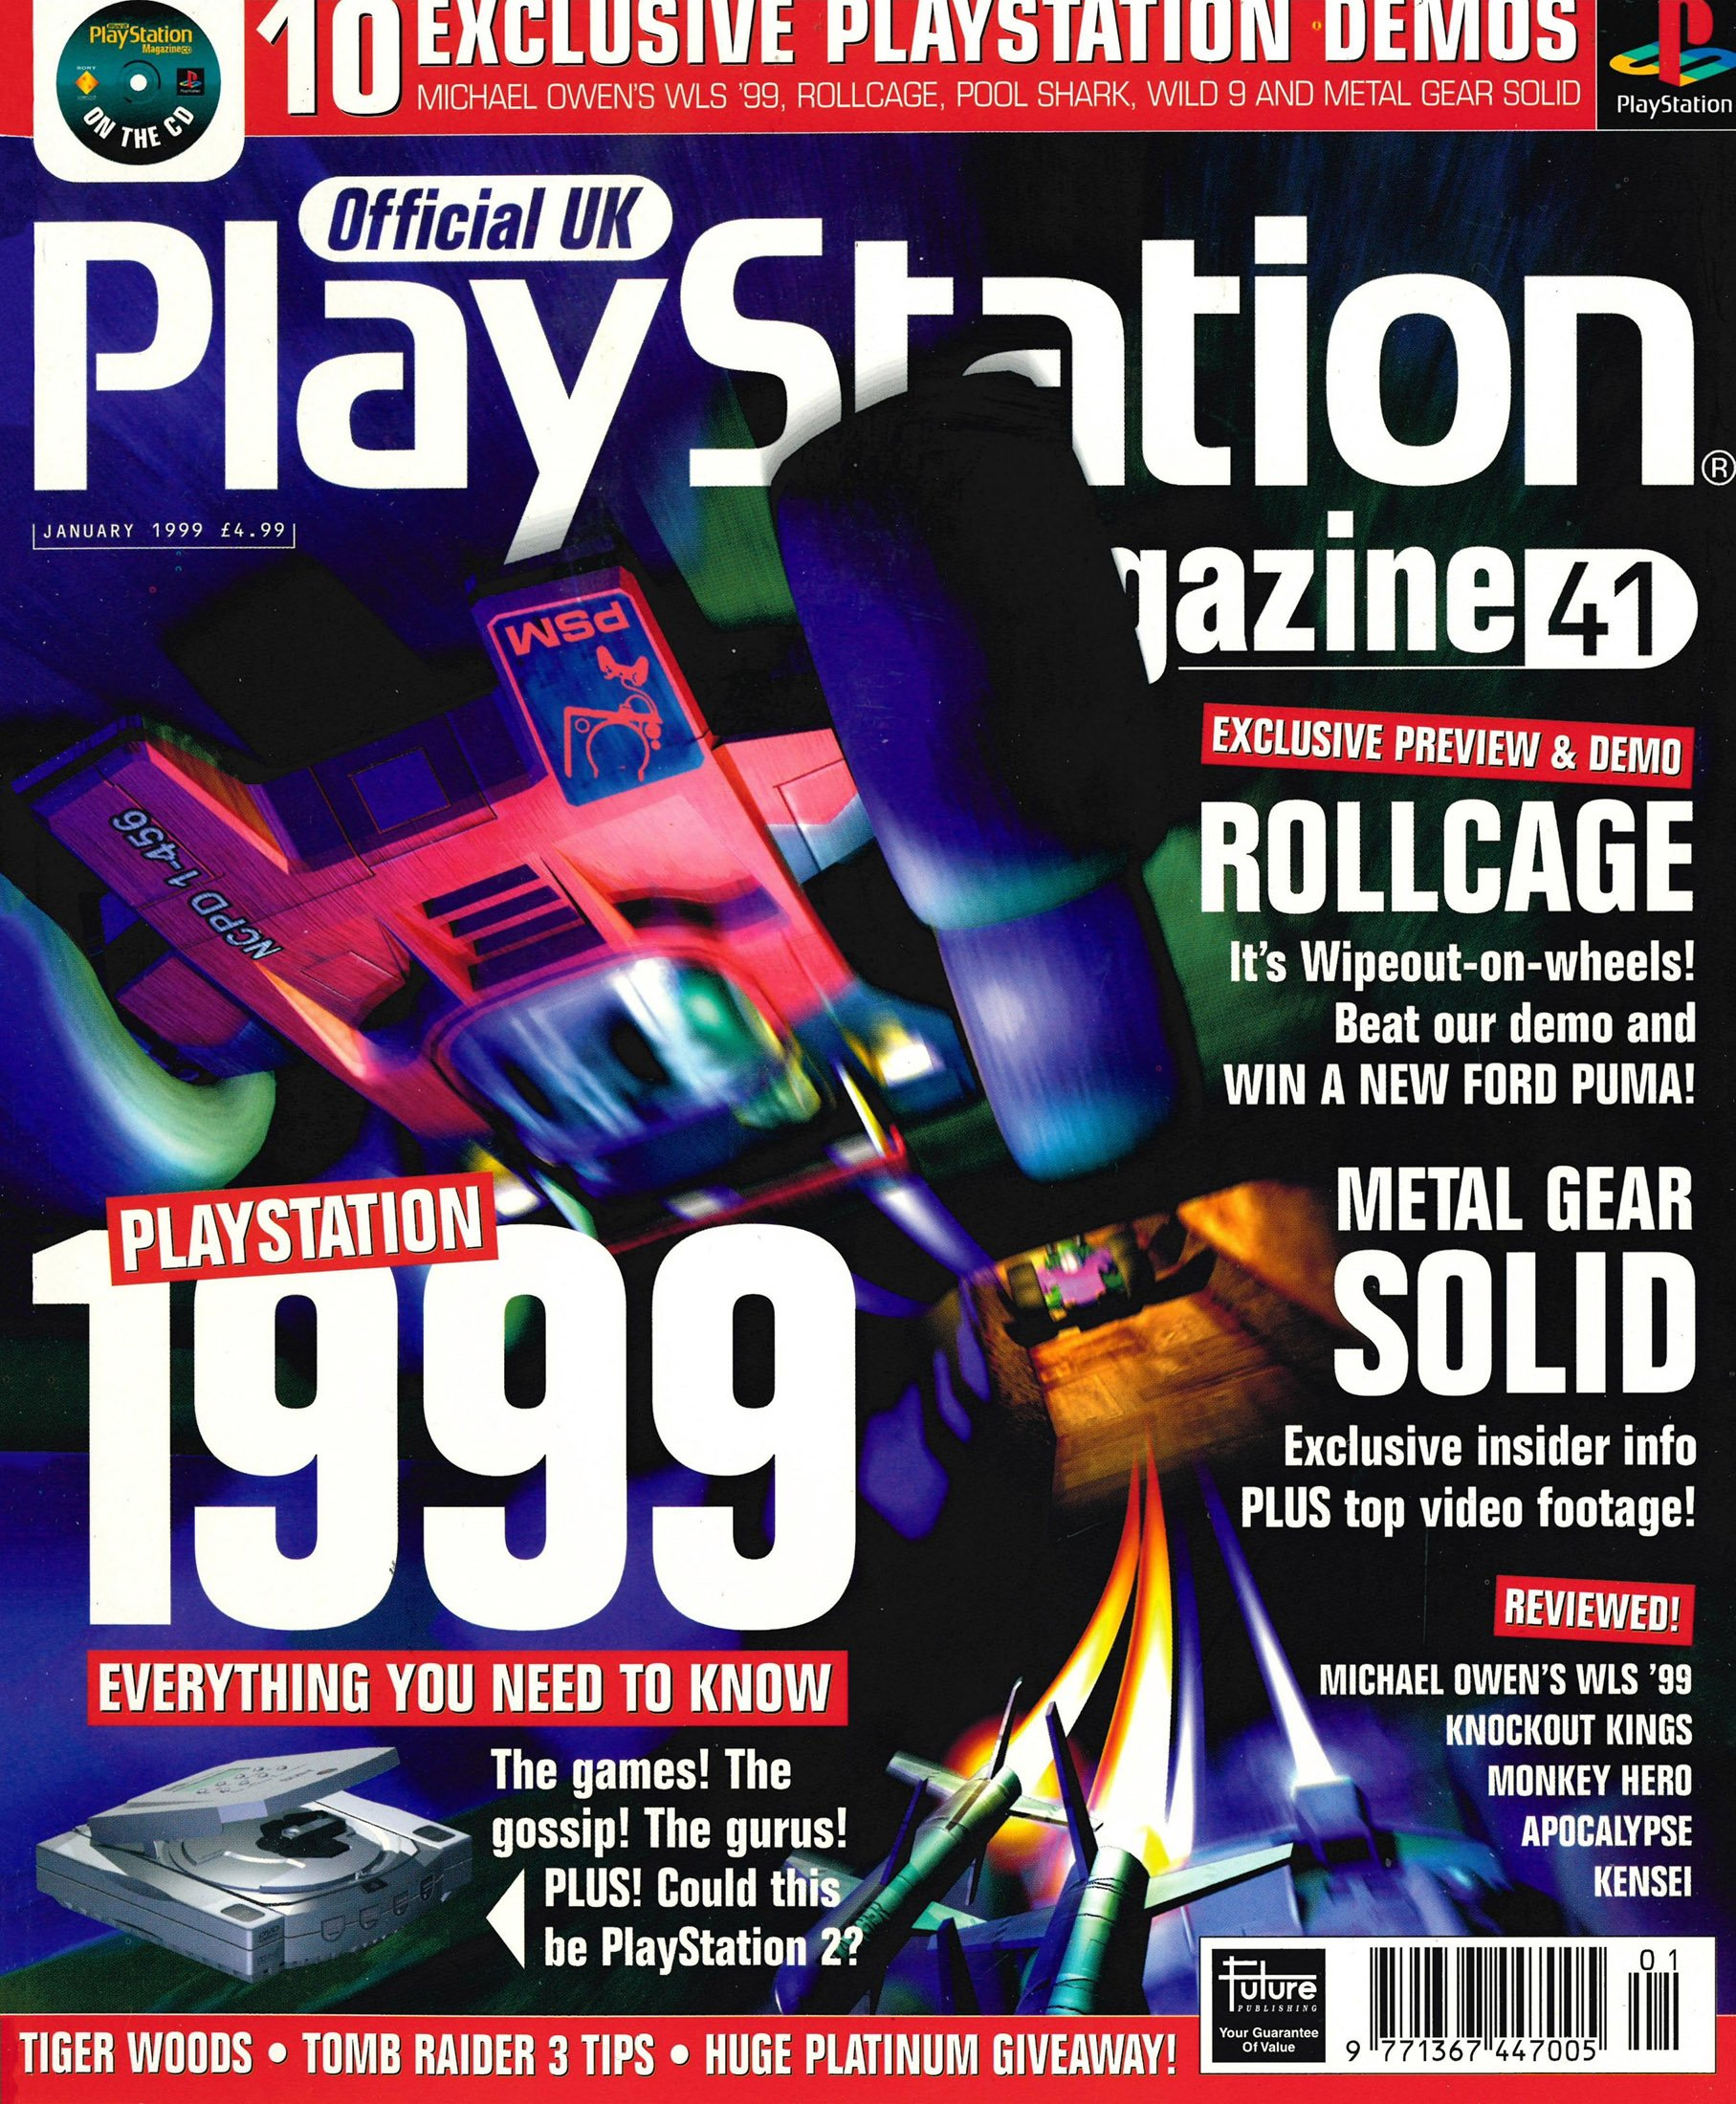 Official UK PlayStation Magazine Issue 041 (January 1999)